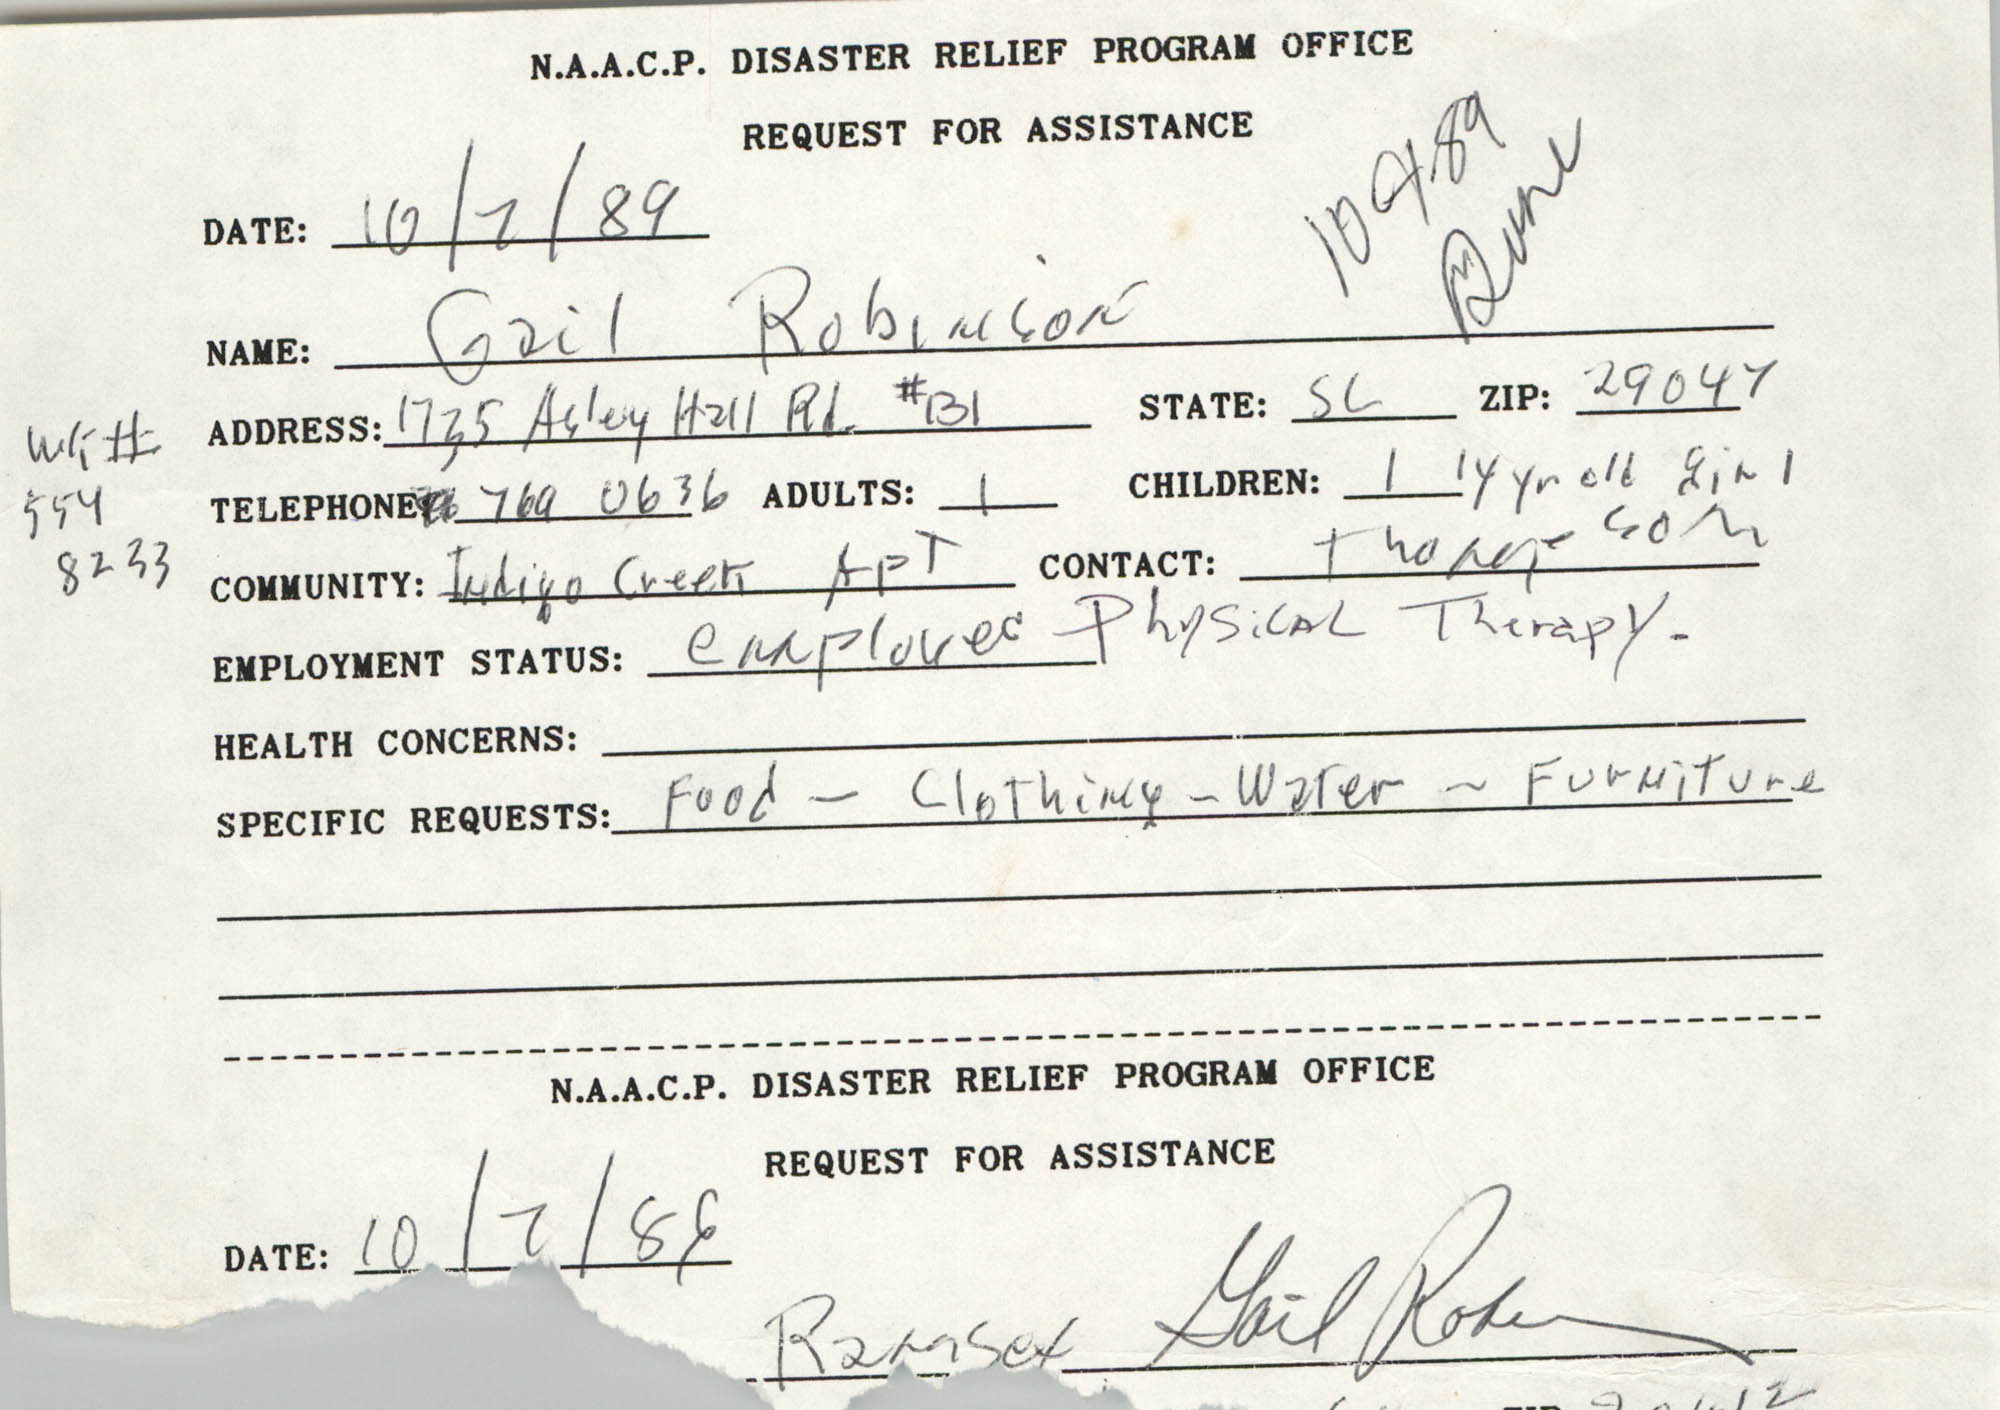 NAACP Disaster Relief Program Office, Hurricane Huge Requests for Assistance, 1989, Page 18